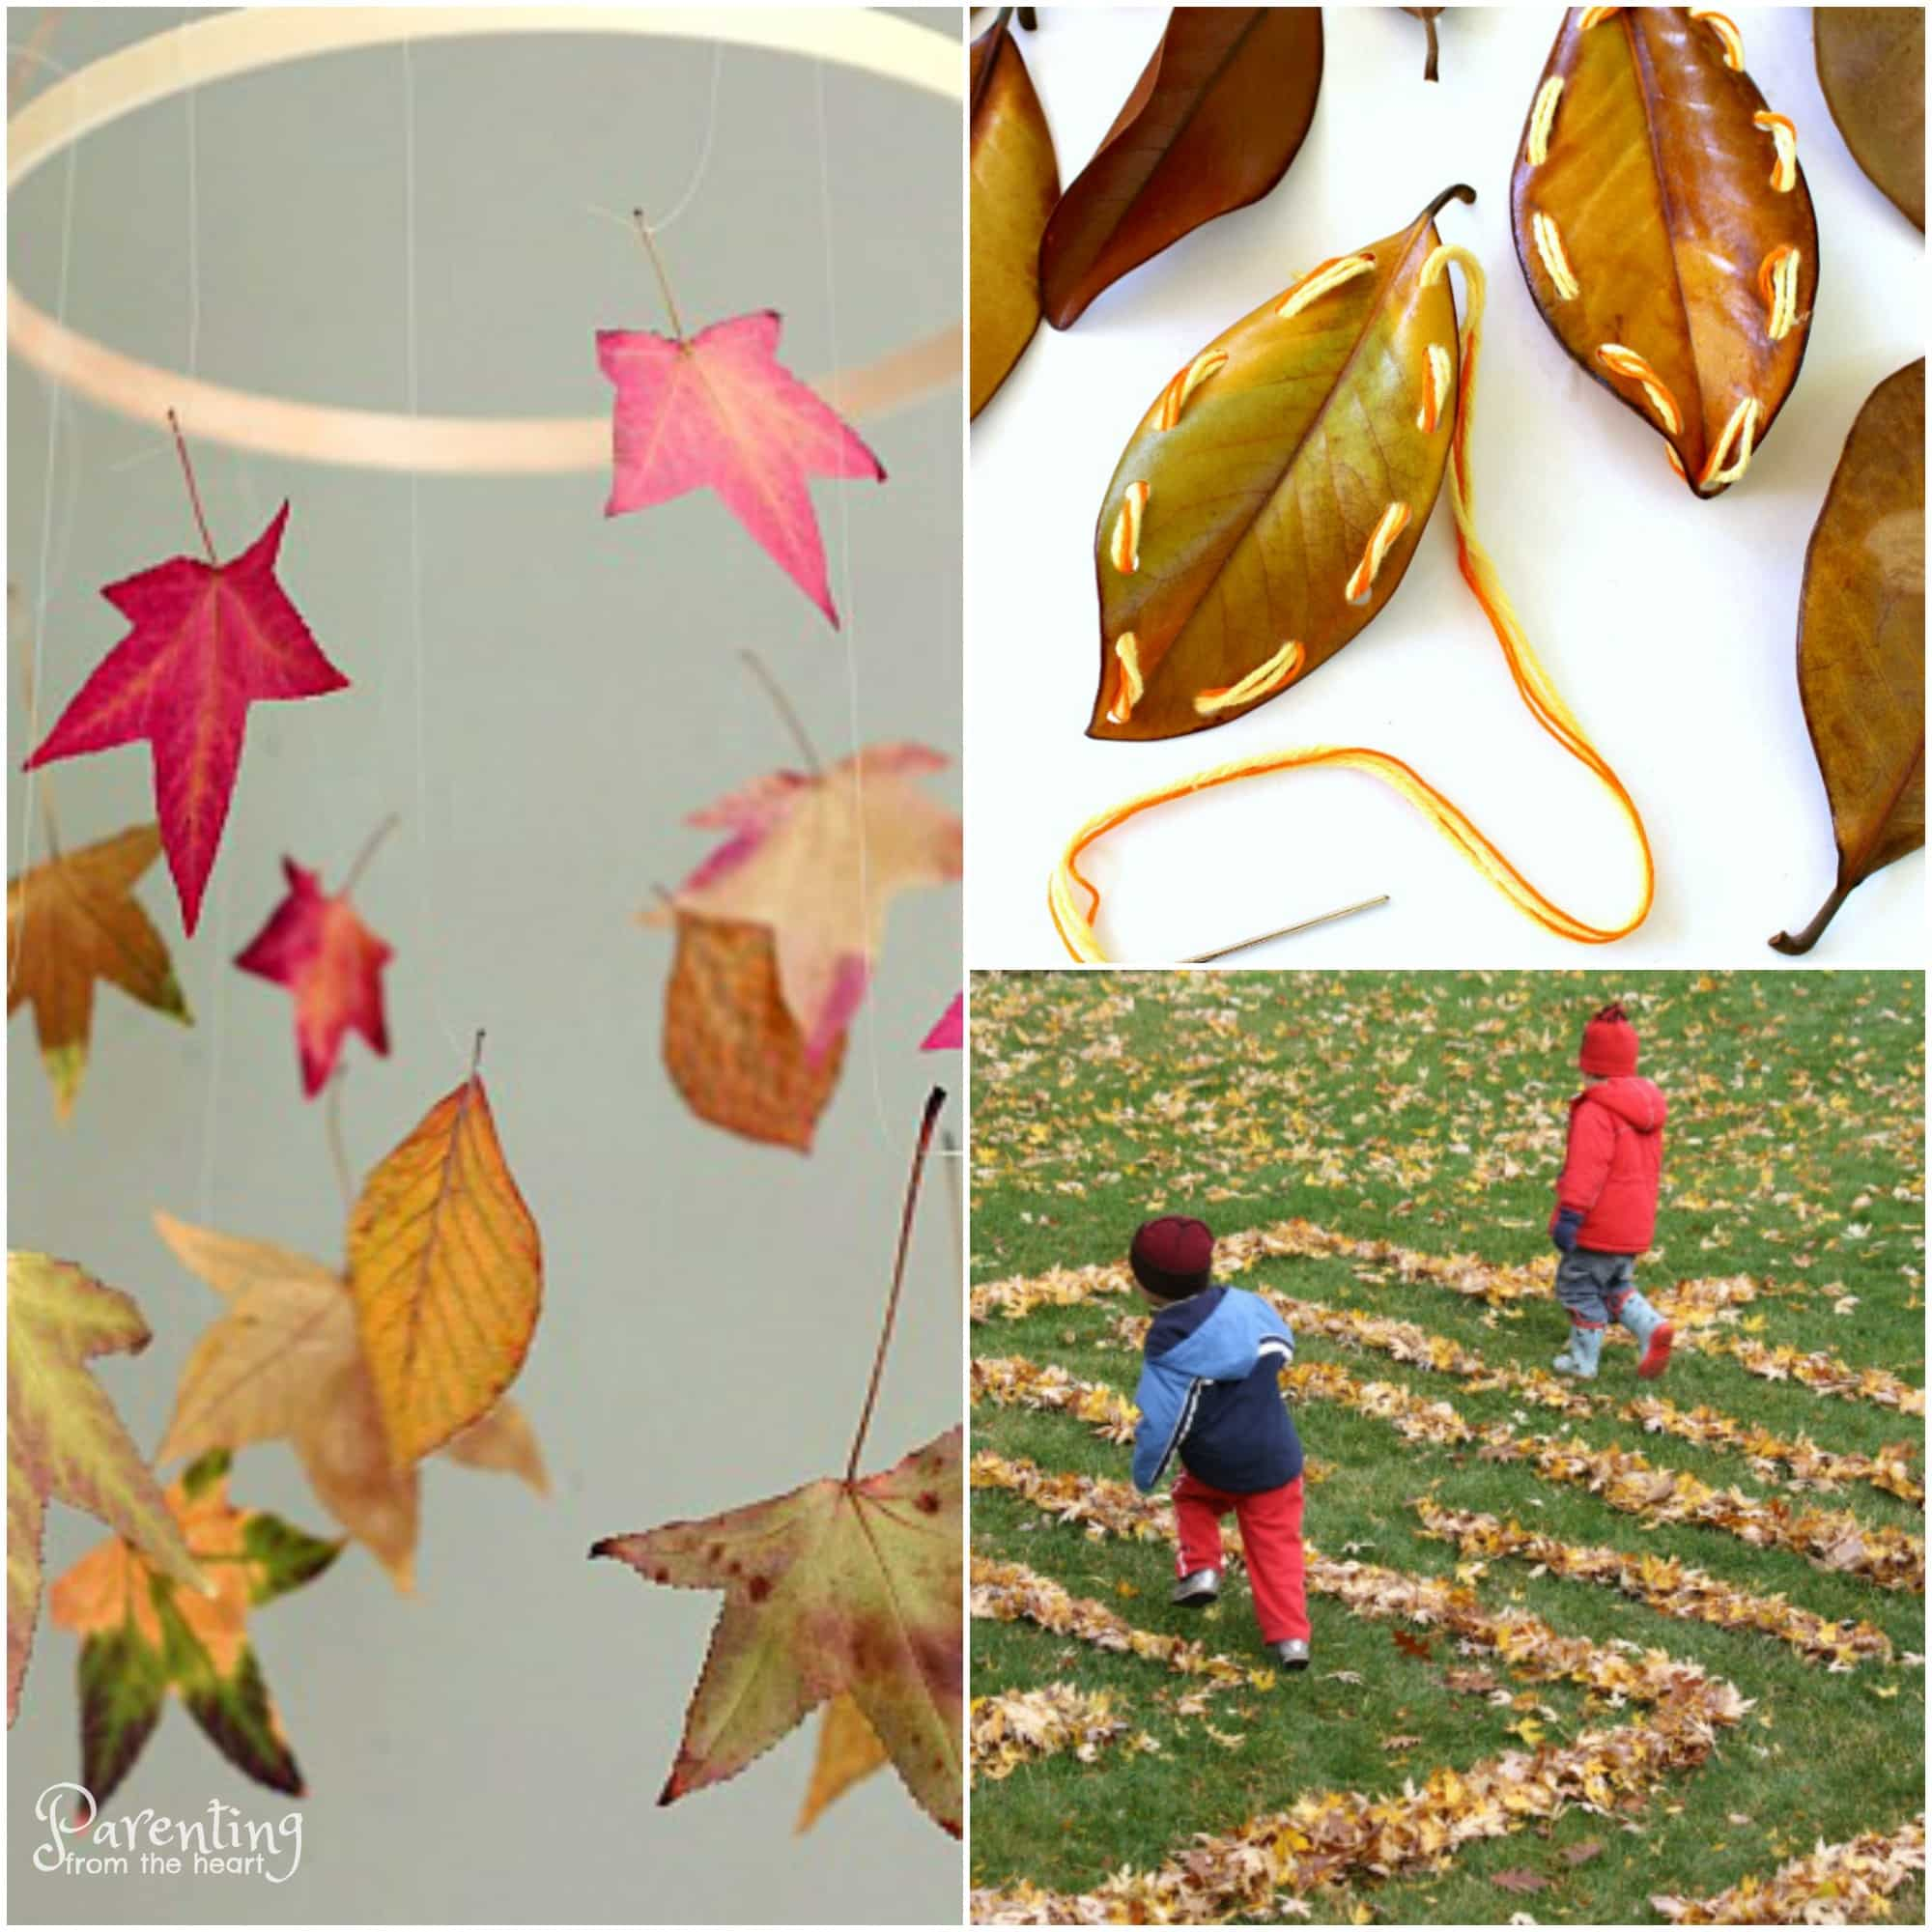 11 Stunning Fall Leaf Crafts You'll Want to do with Your Kids